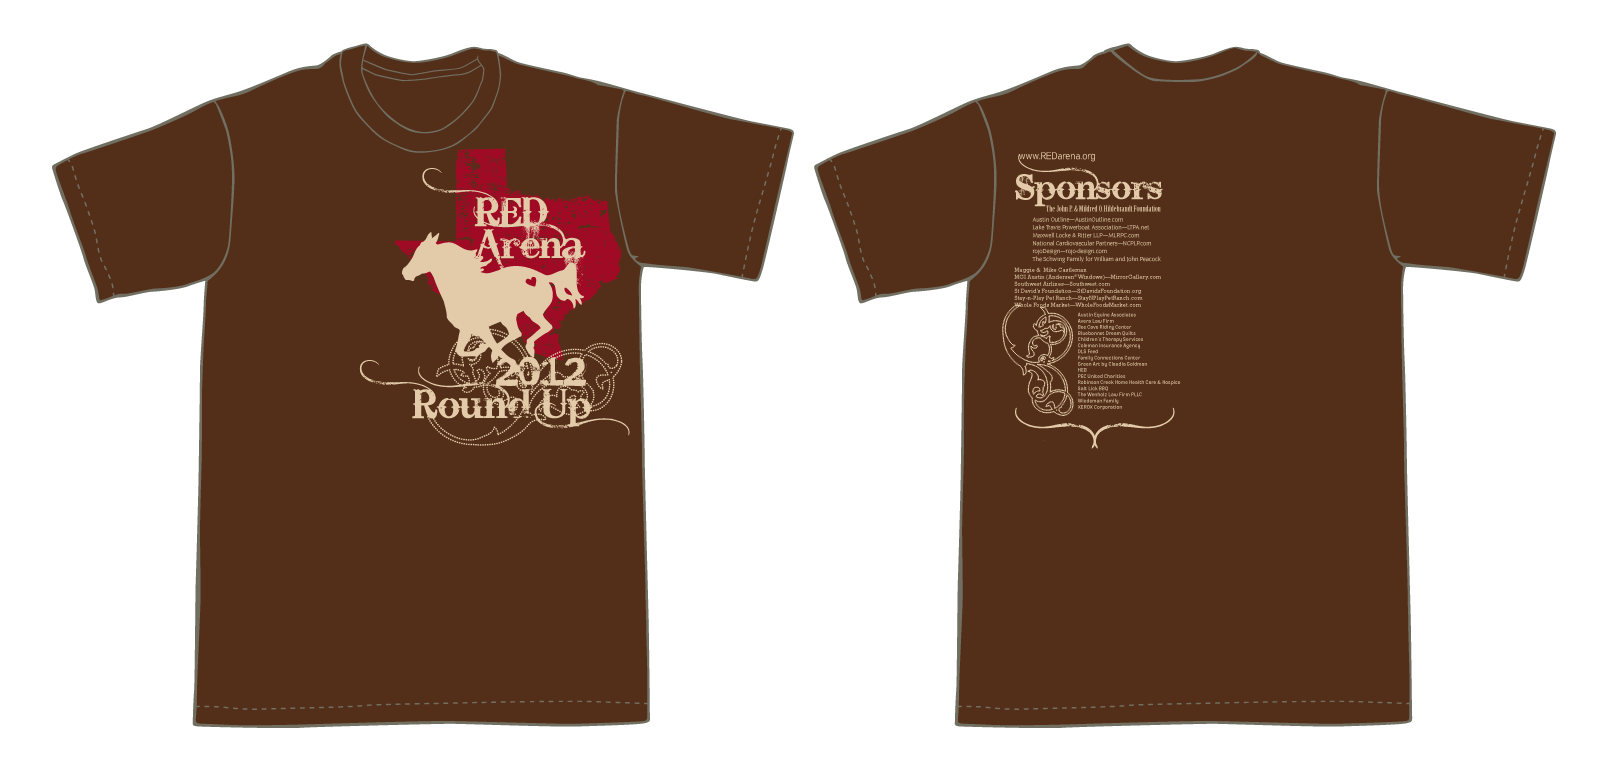 RED Arena : T Shirt – Round Up 2012